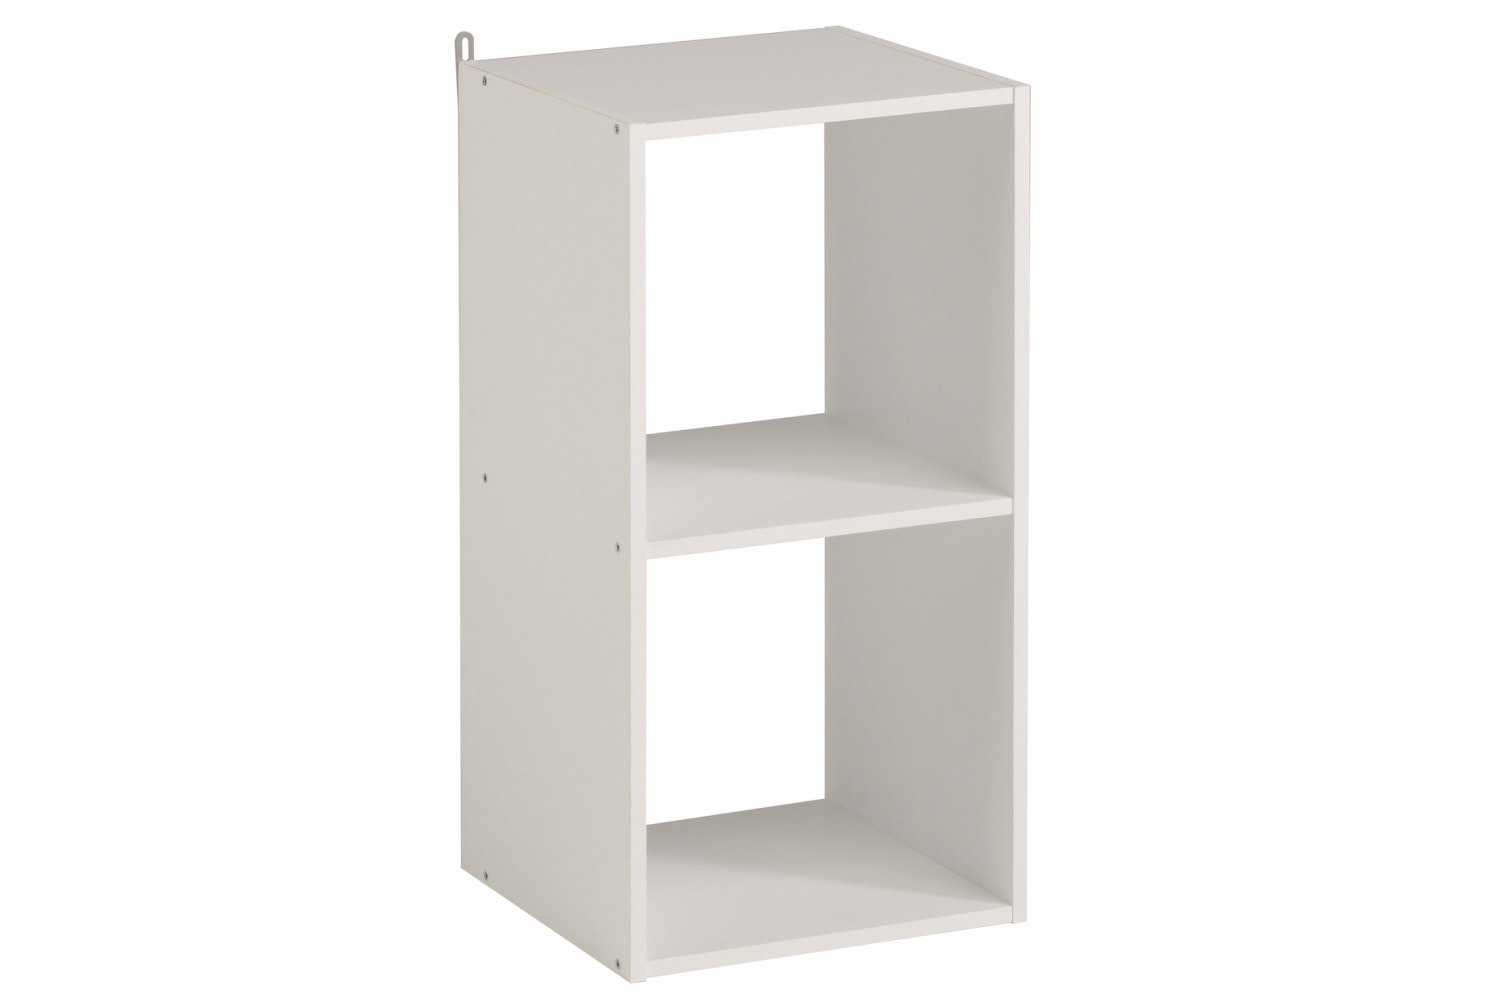 Kubikub 2 Cube Column Storage | White